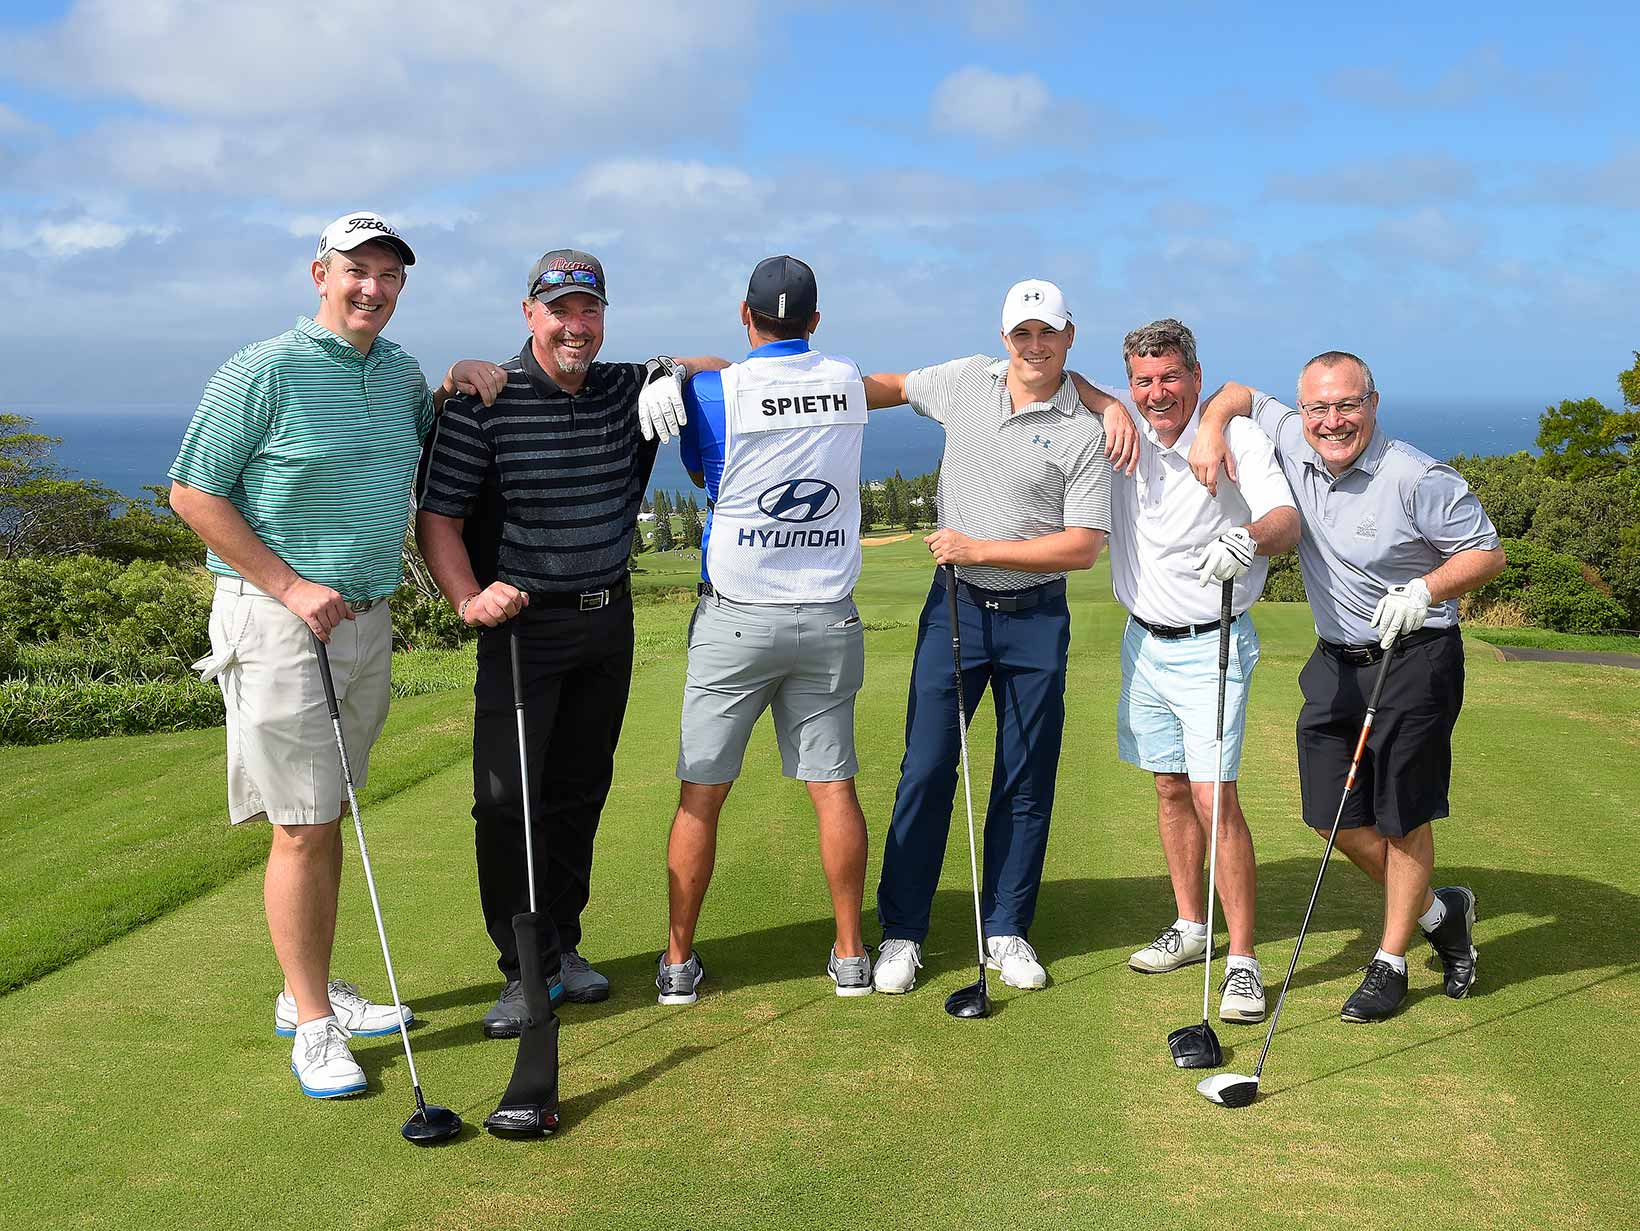 Team Spieth Poses for a Photo During Wednesday's Pro-Am